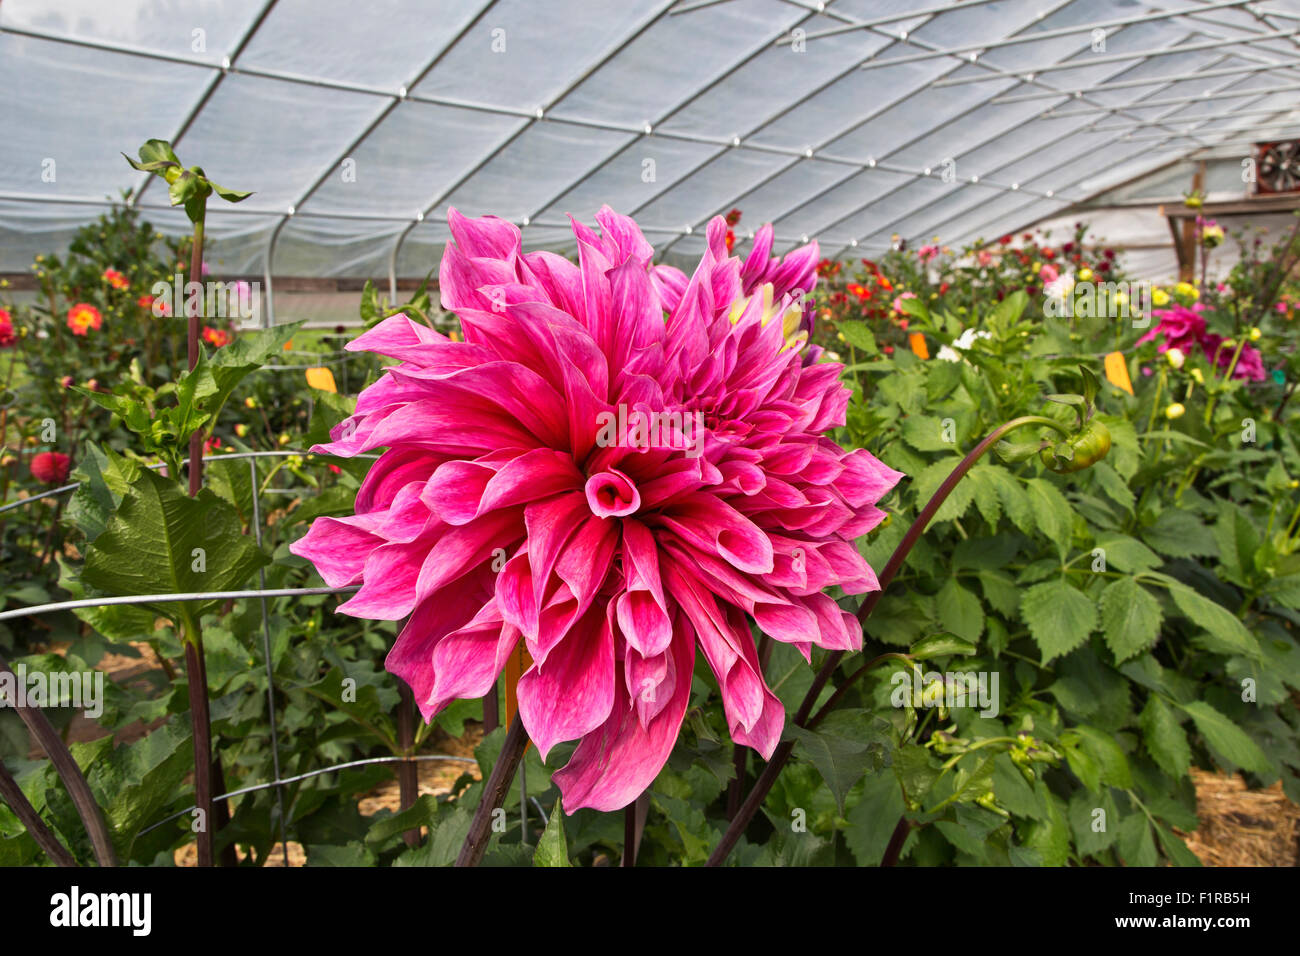 Dahlia 'Emory Paul'  growing in tunnel, 1st Prize Winning. - Stock Image